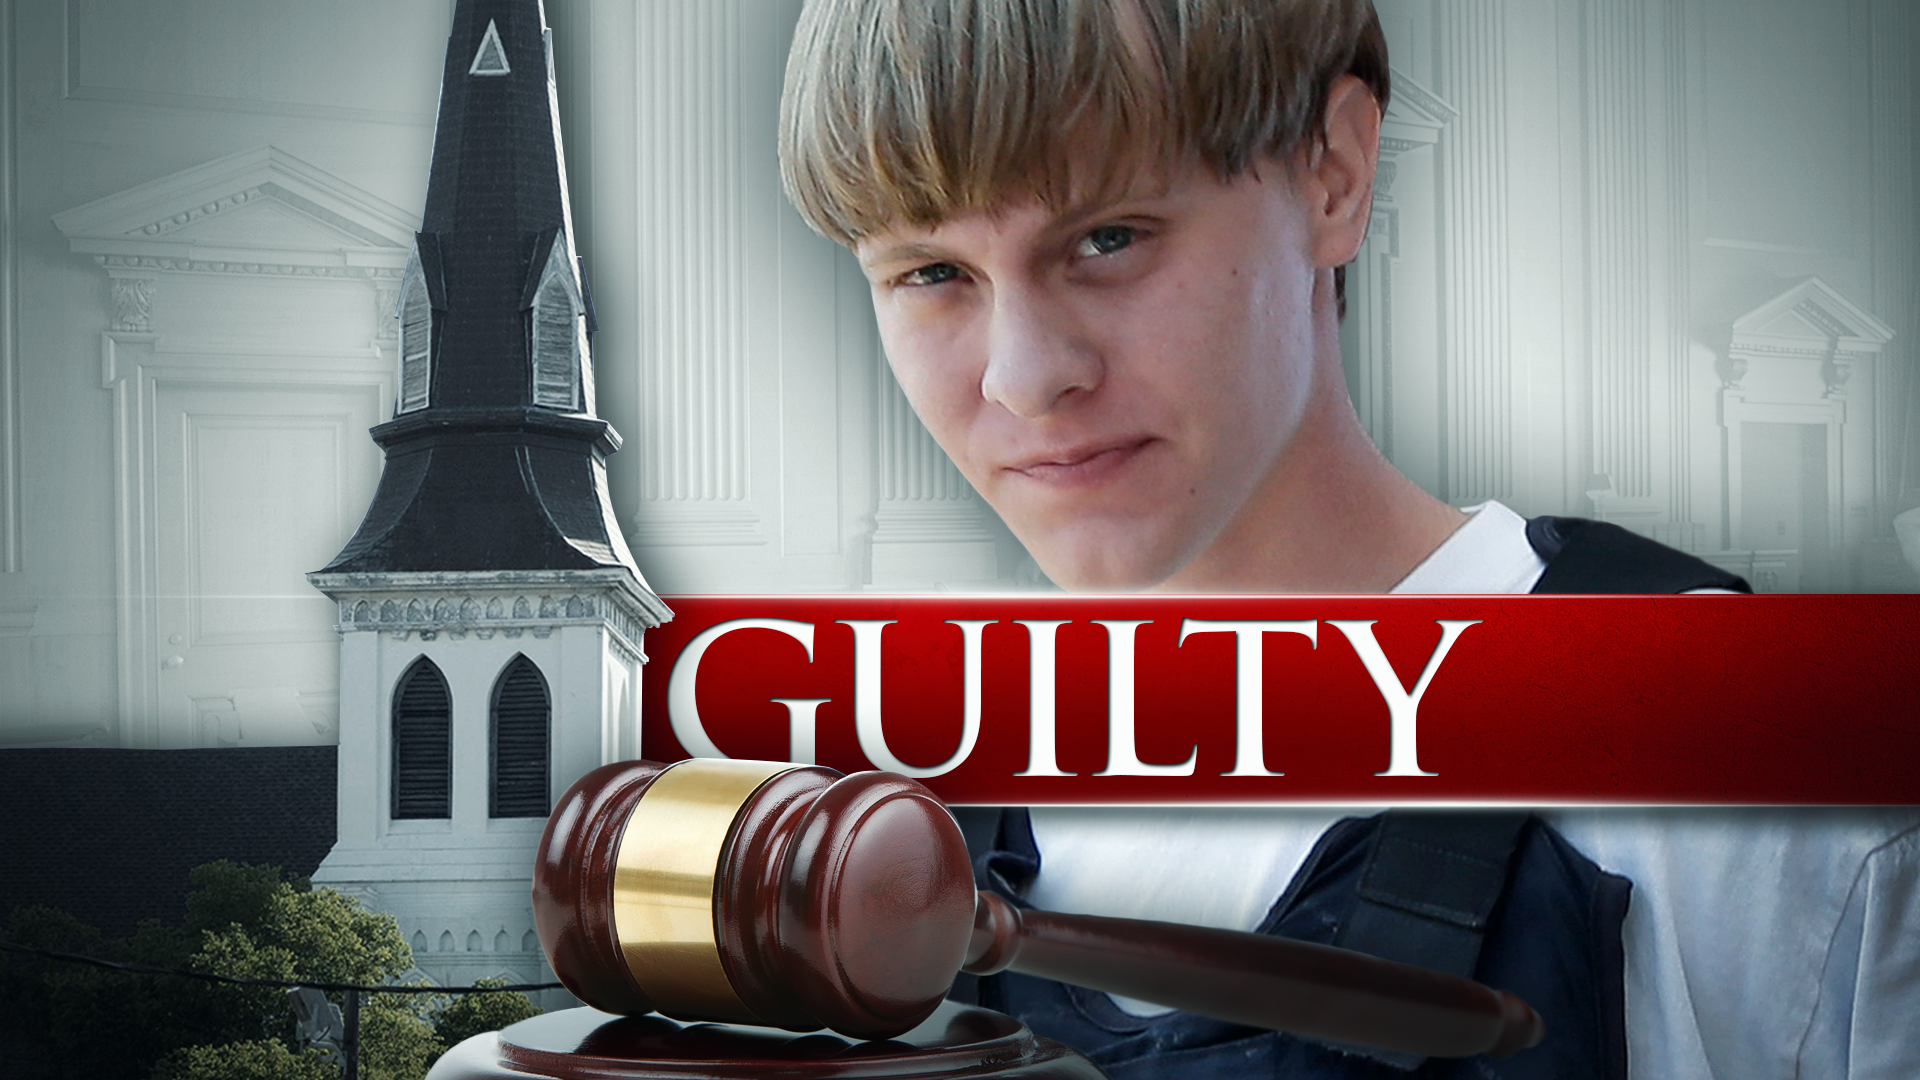 dylann-roof-guilty_204047